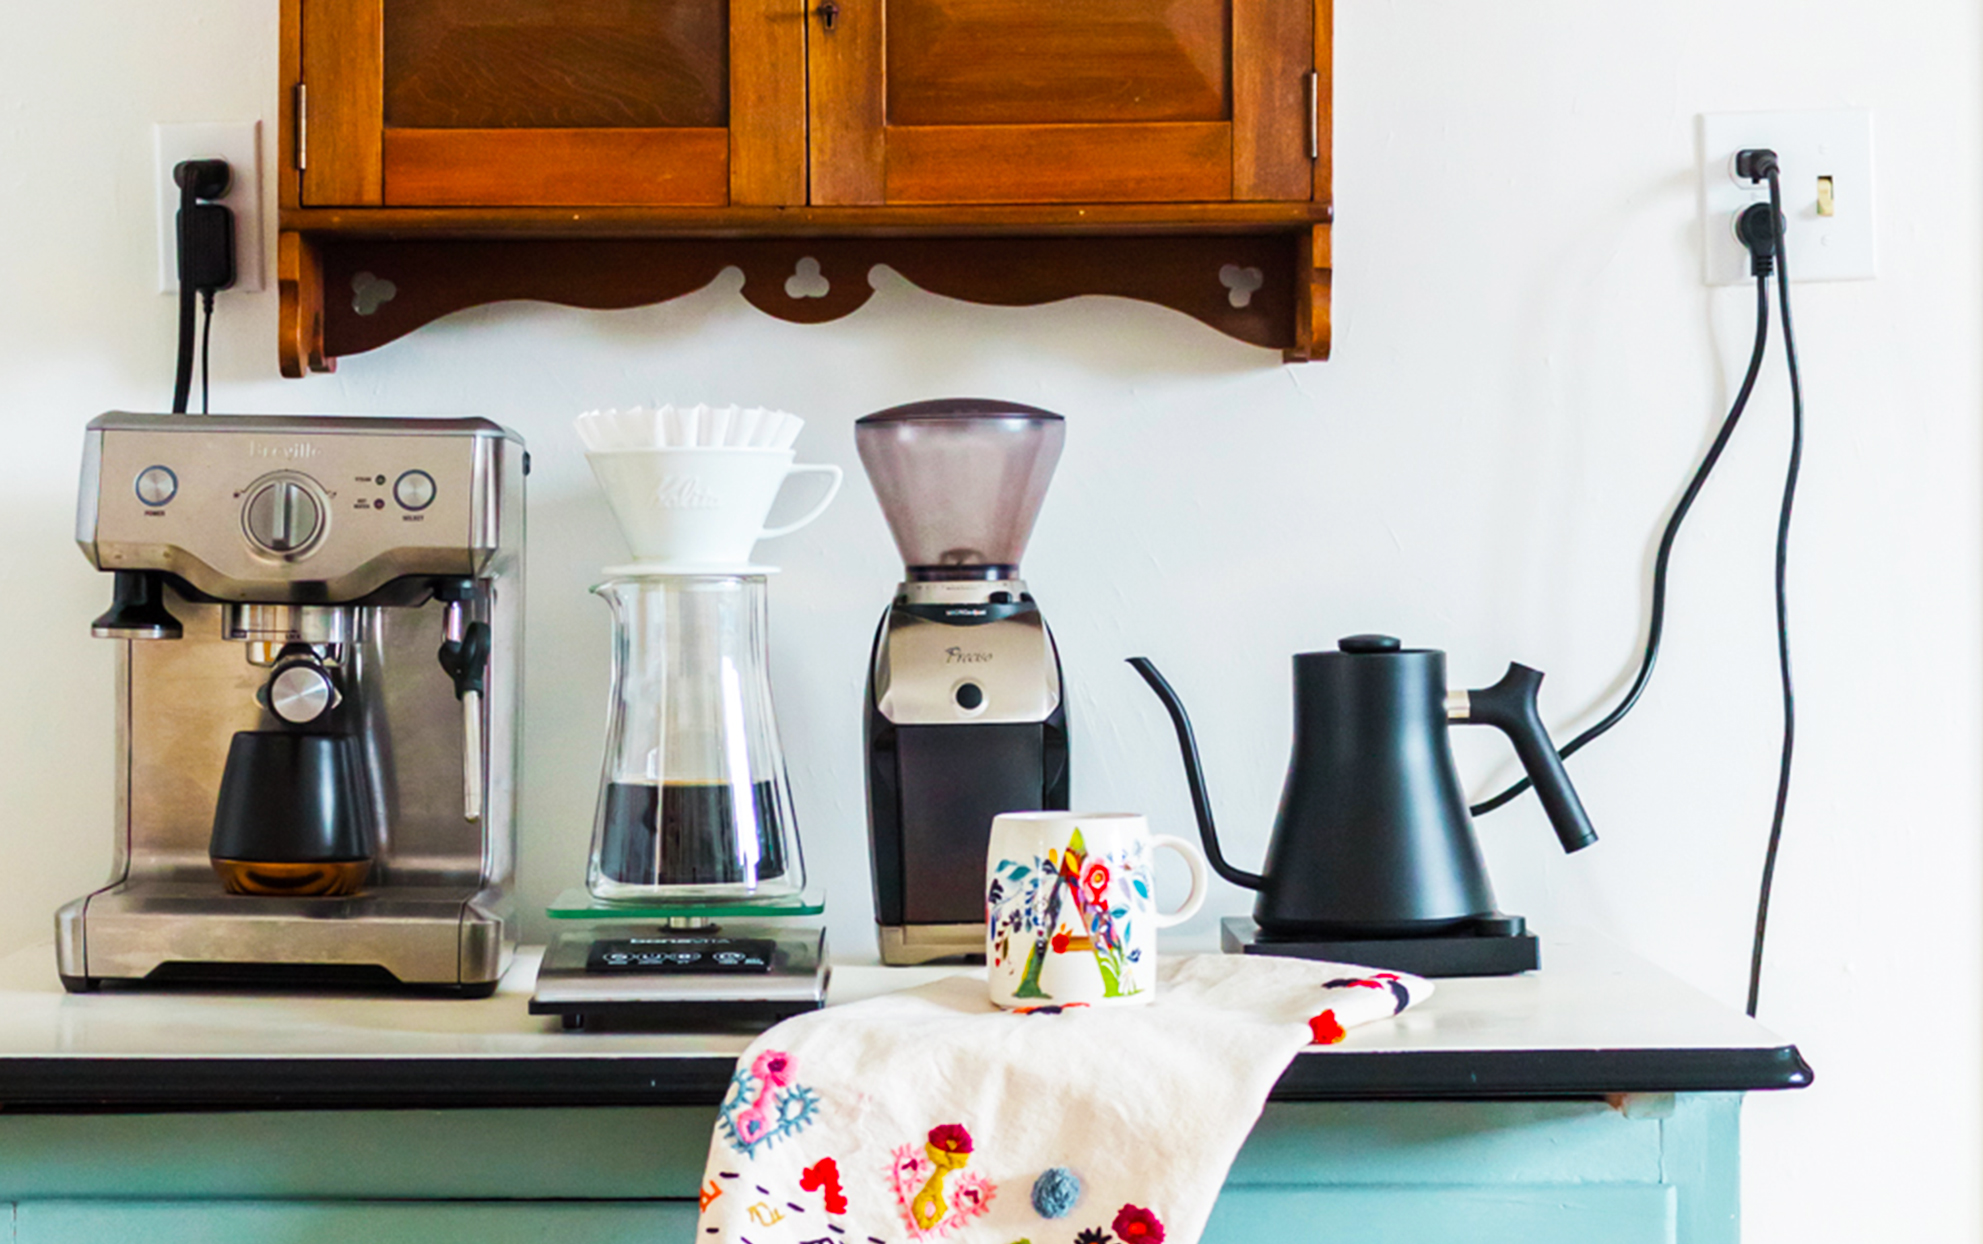 Kitchen counter with coffee makers and power cords plugged in